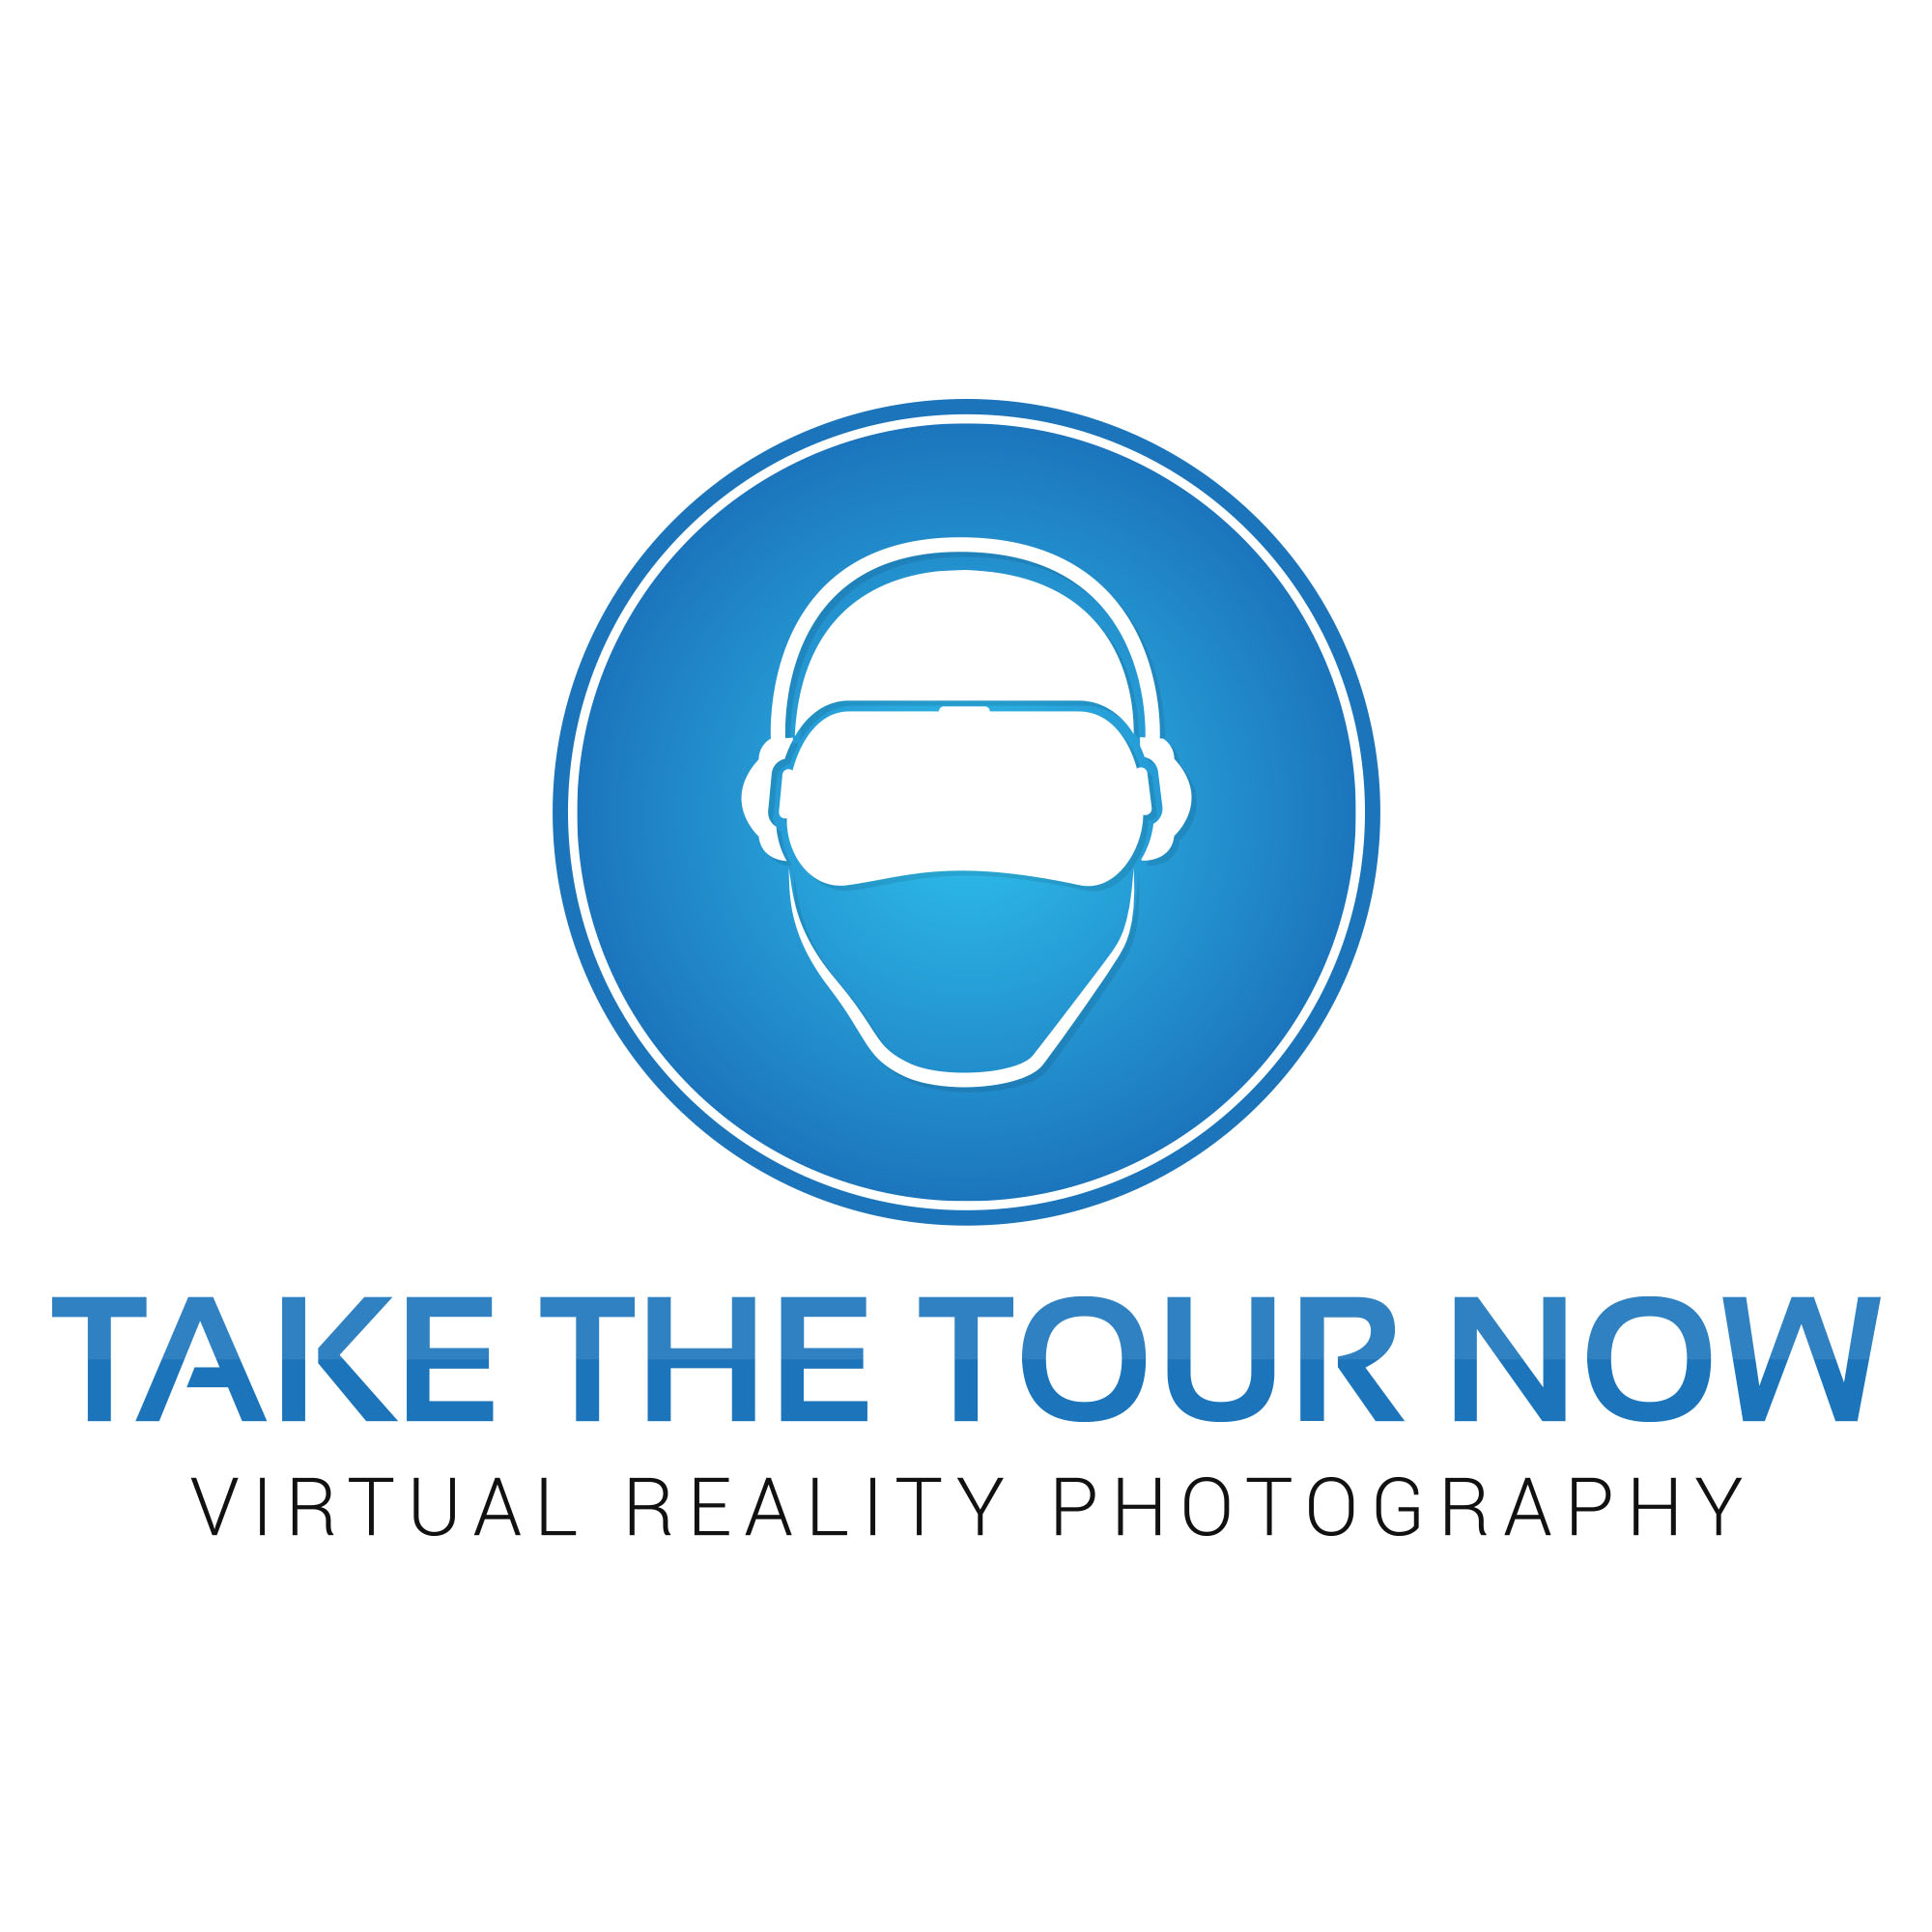 Take The Tour Now logo